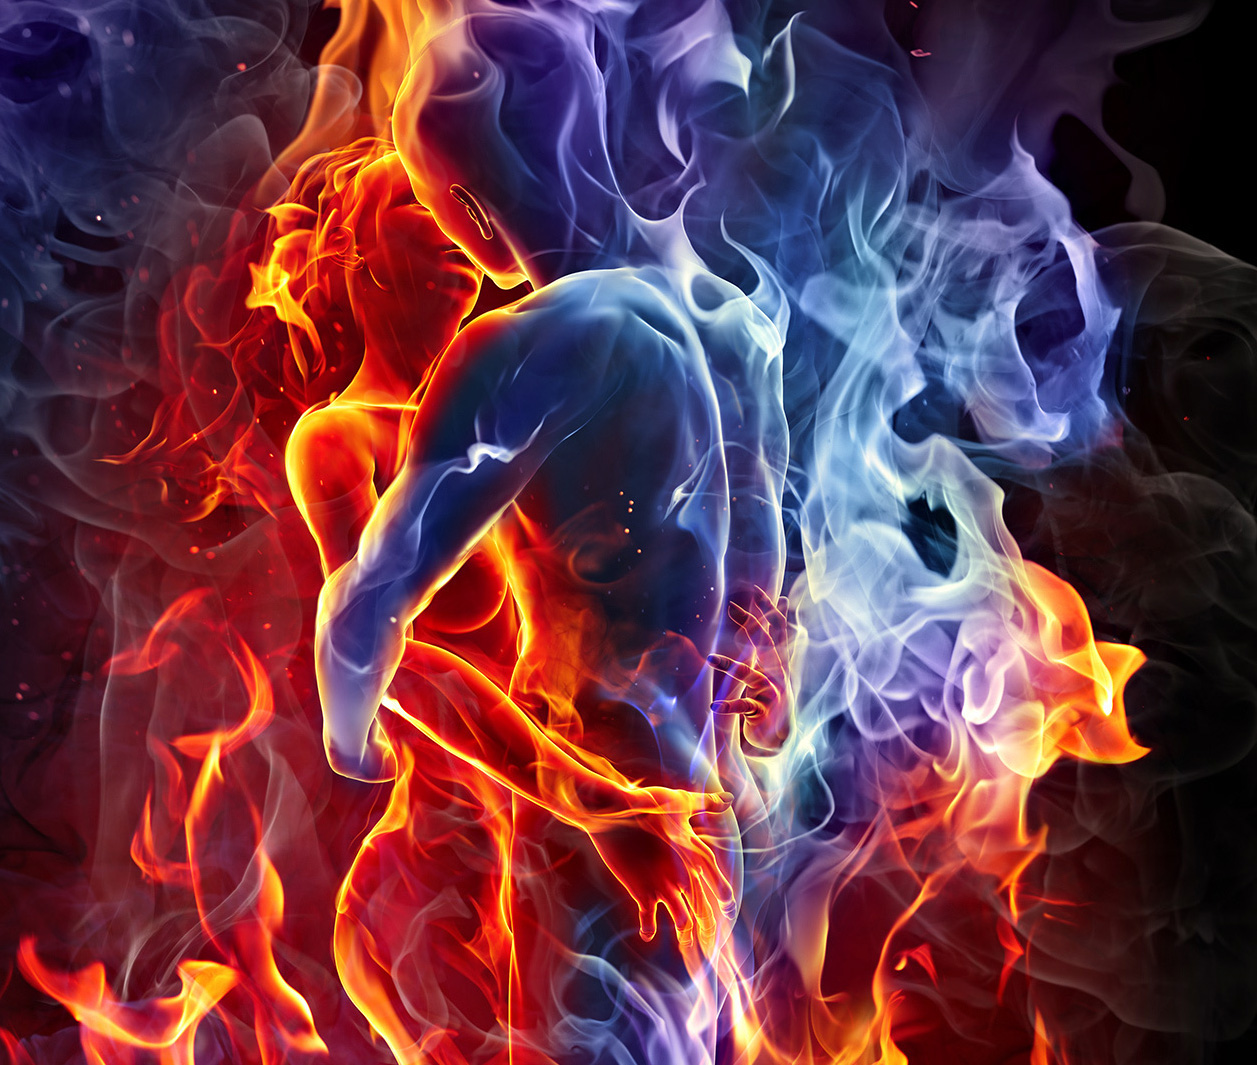 passion in flames ranting